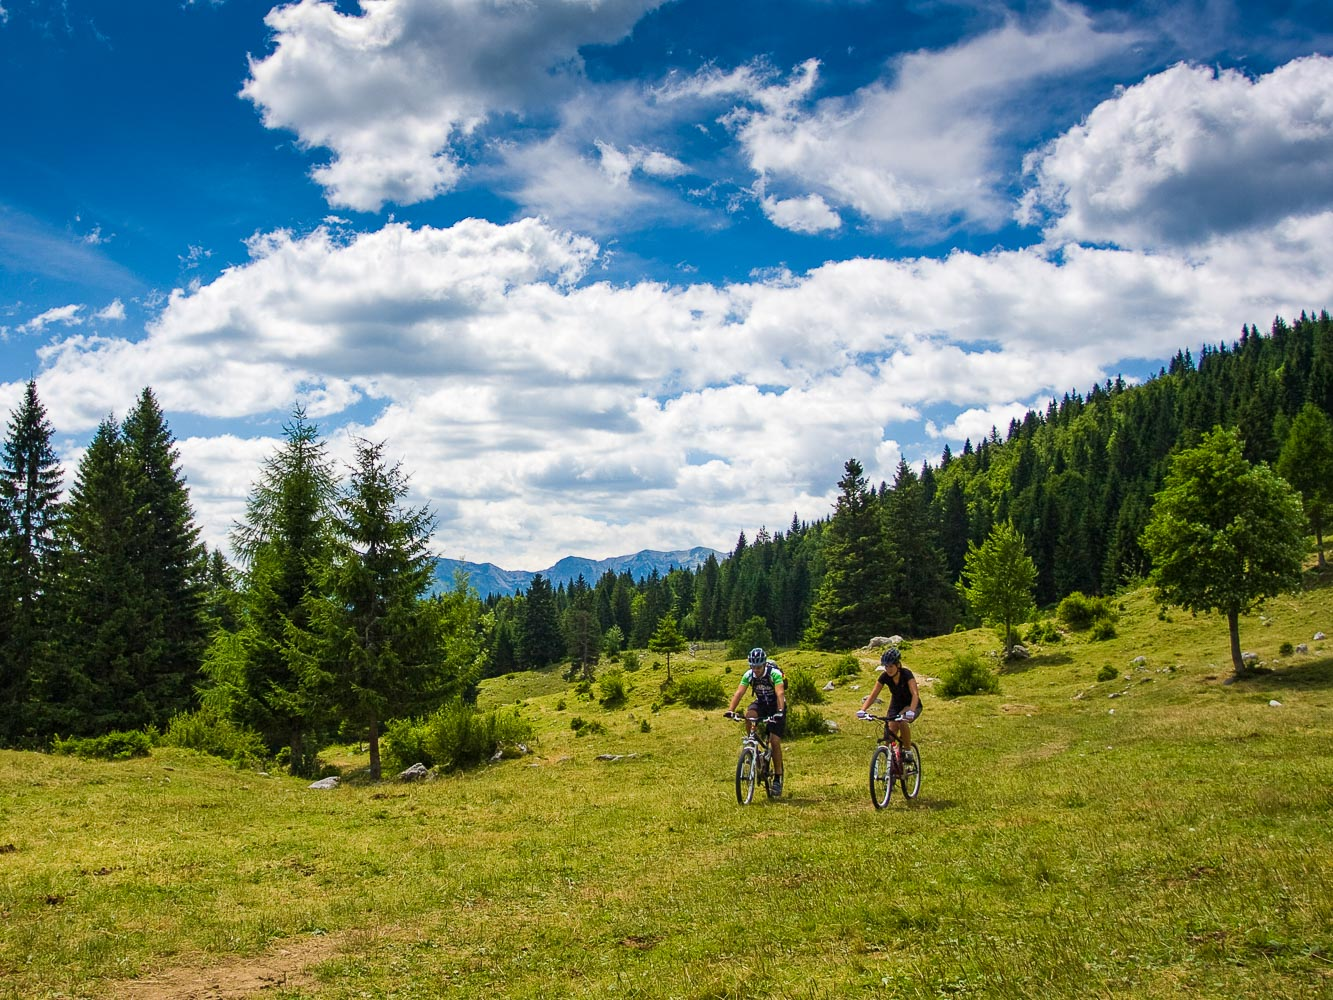 bled-mountain-bike-tour-slotrips